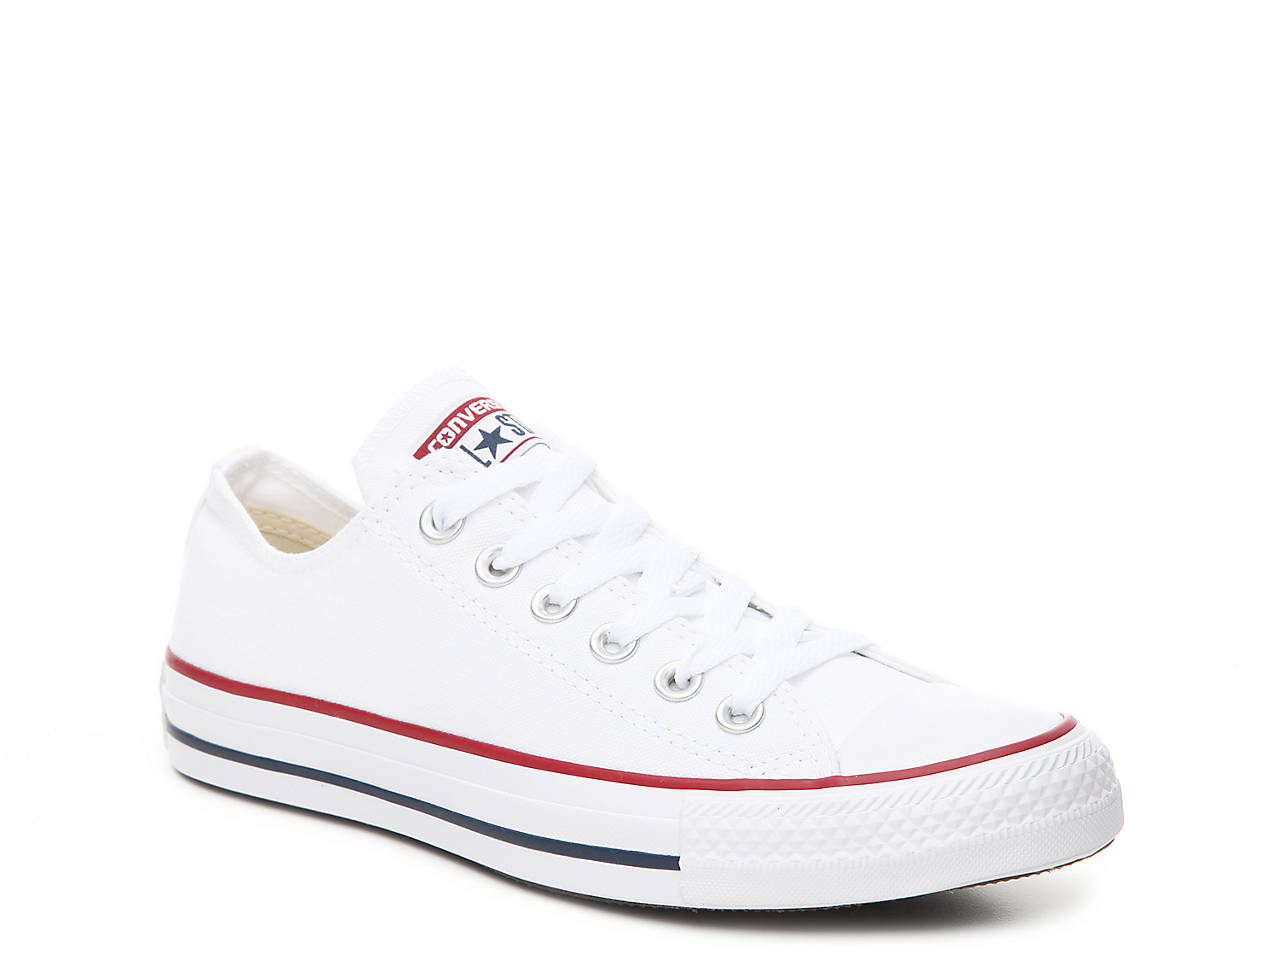 Converse Chuck Taylor All Star Sneaker Damens's Damens's Schuhes Schuhes Schuhes   DSW 05cd7f